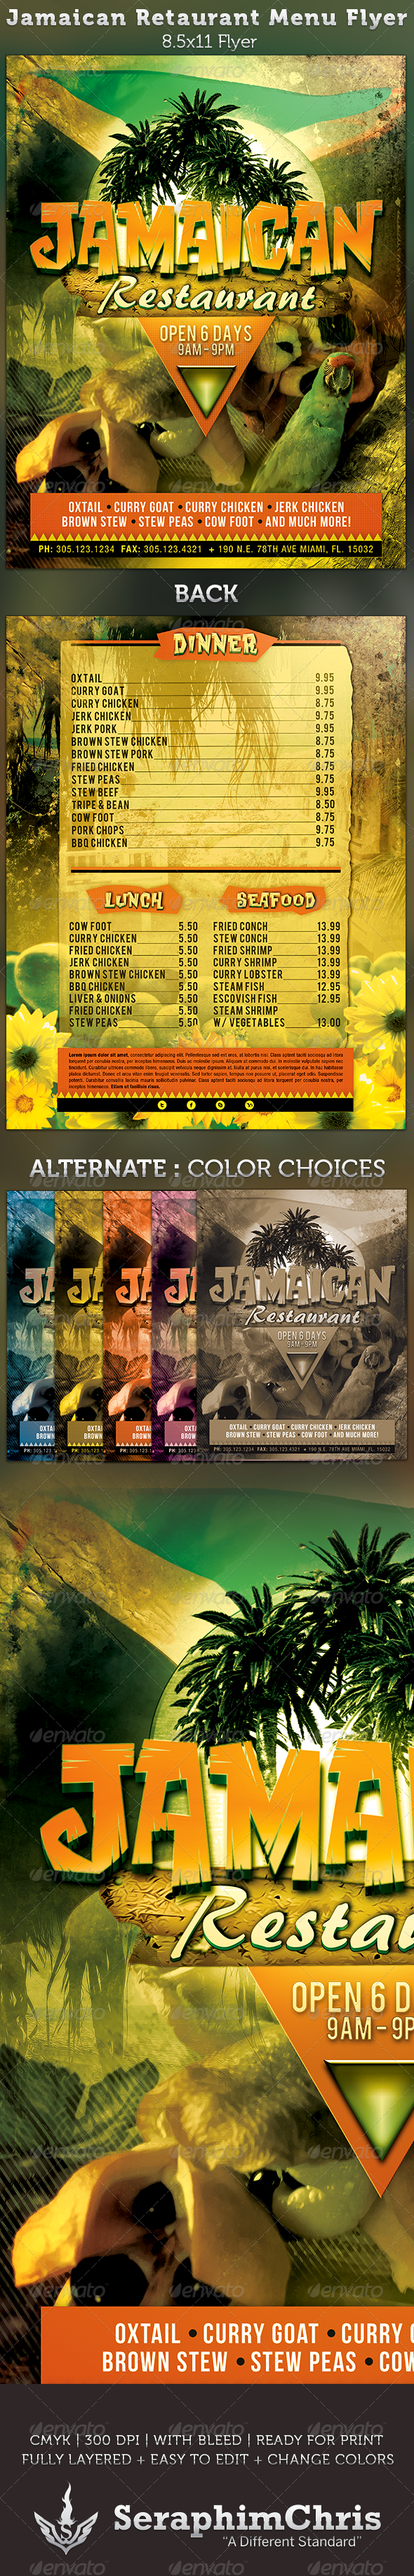 Jamaican Restaurant Menu Flyer Template - Restaurant Flyers